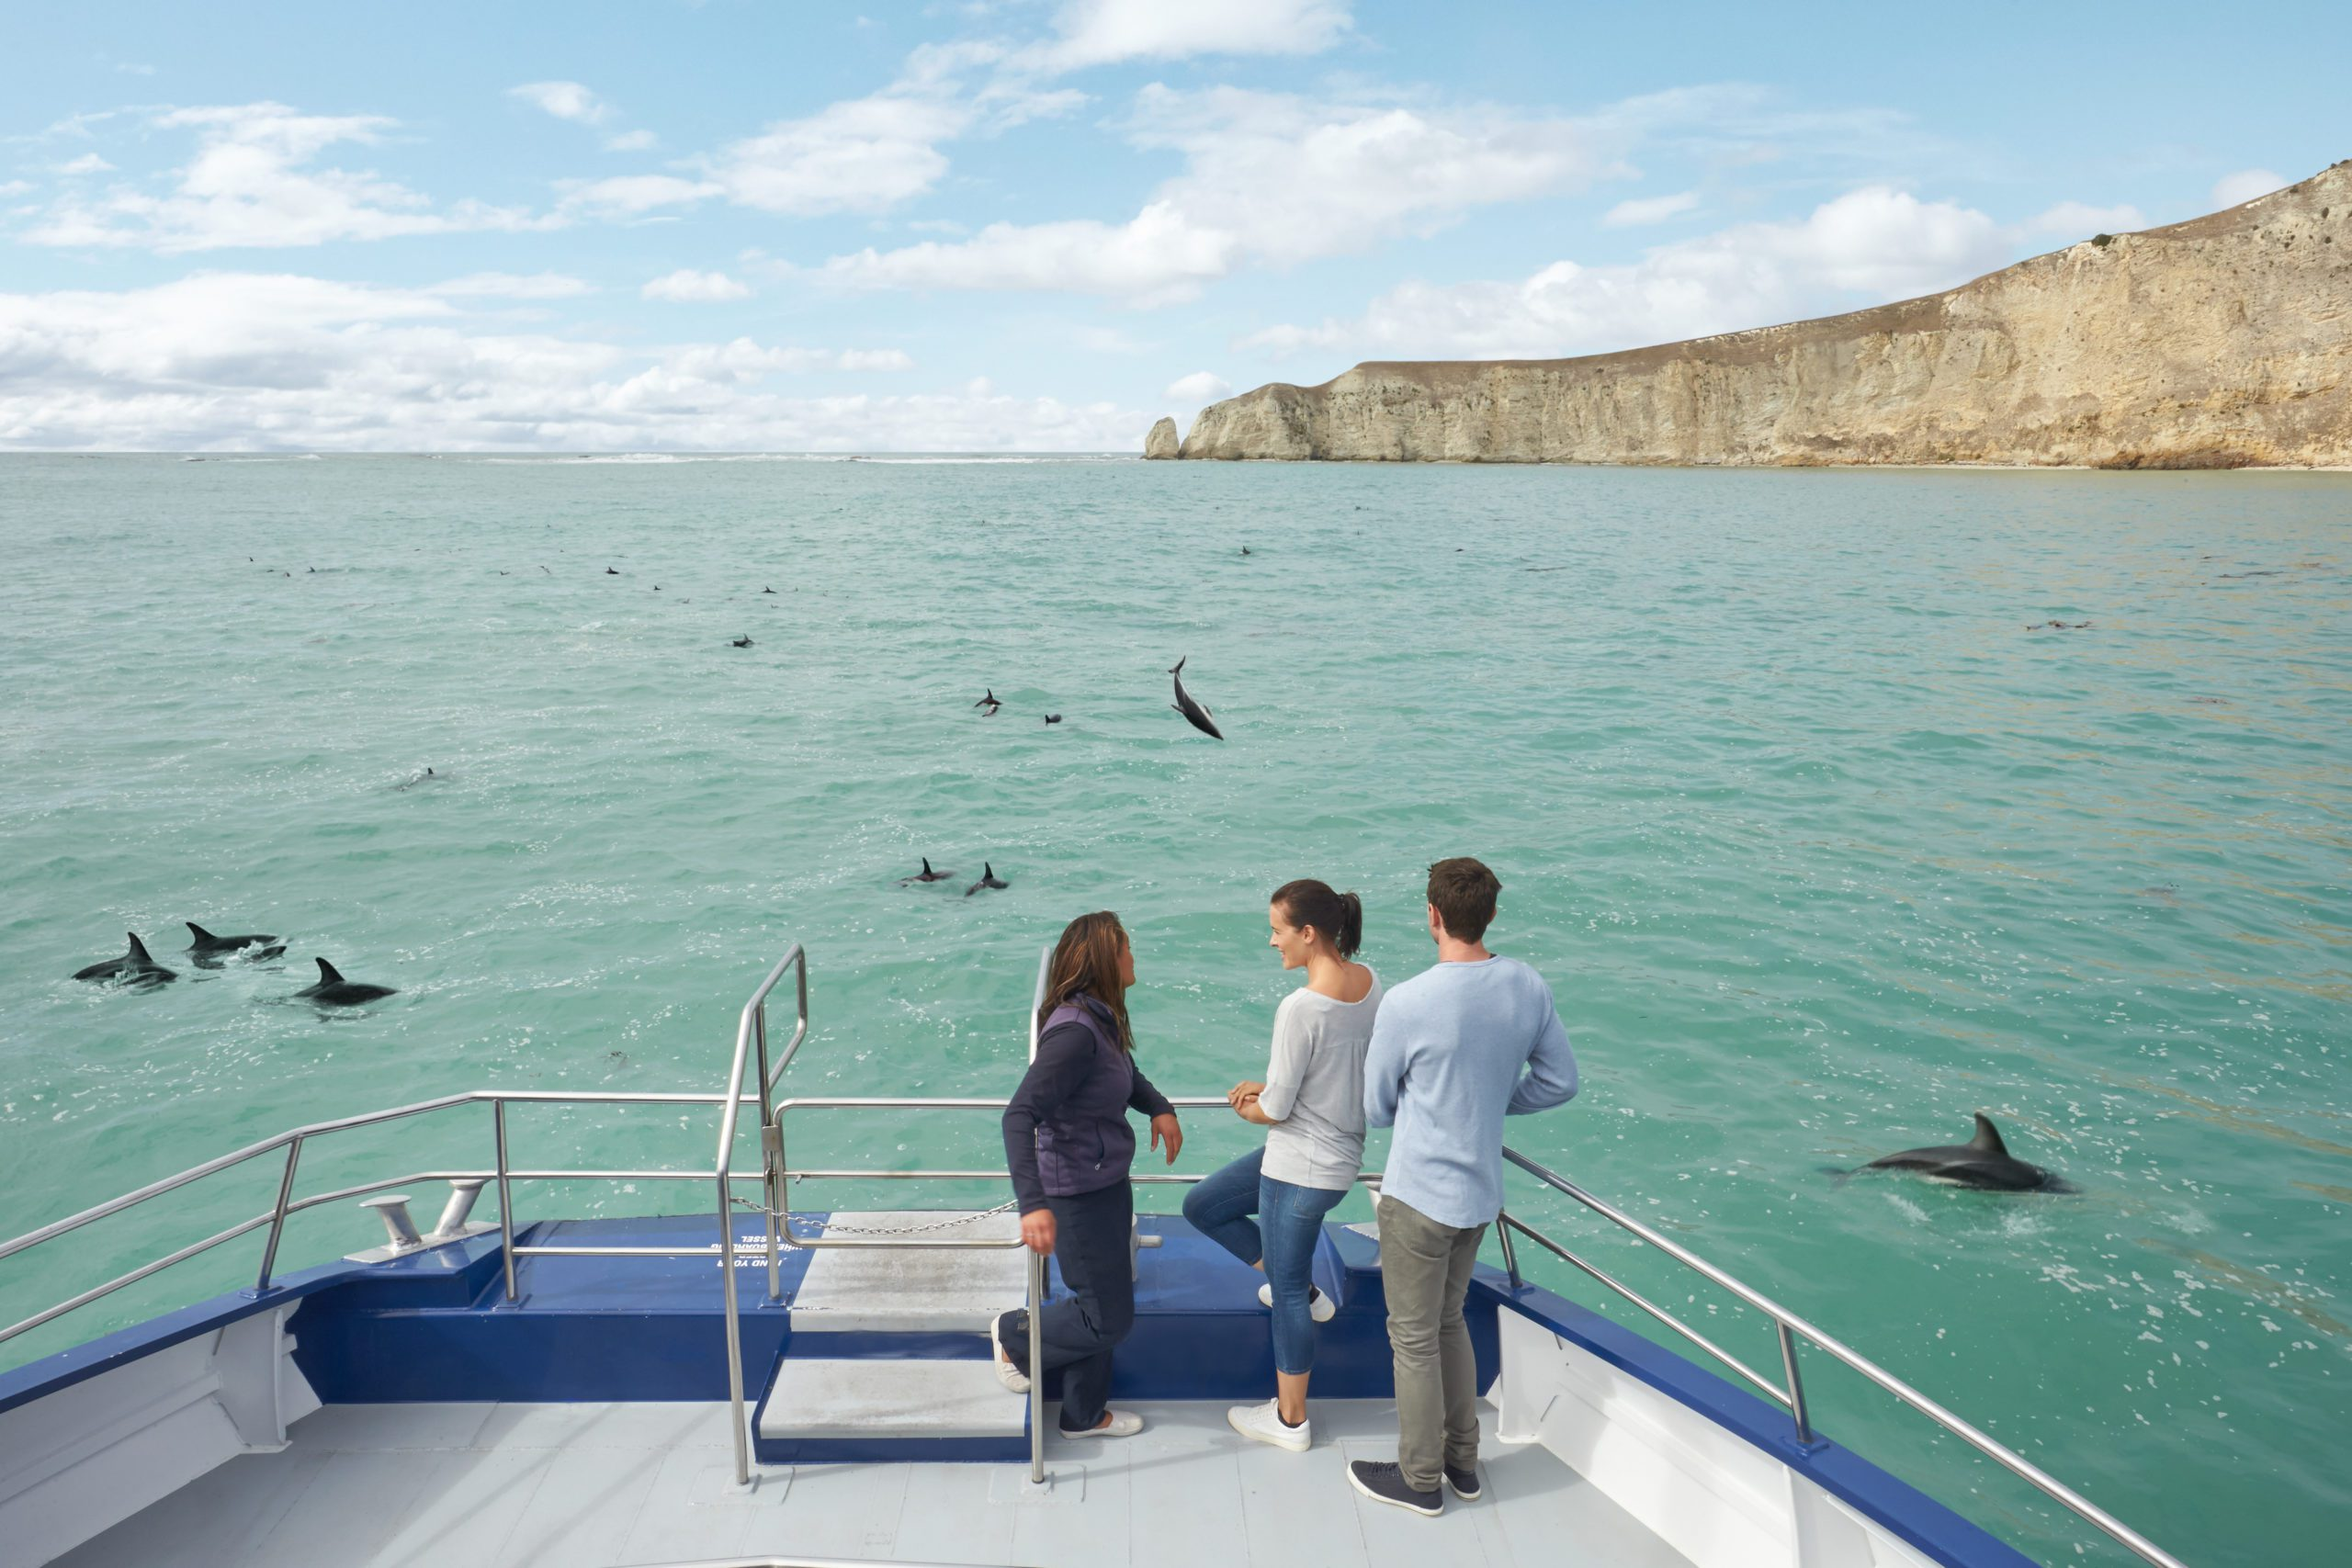 People riding on a dolphin-viewing boat with dolphins breaching all around them.